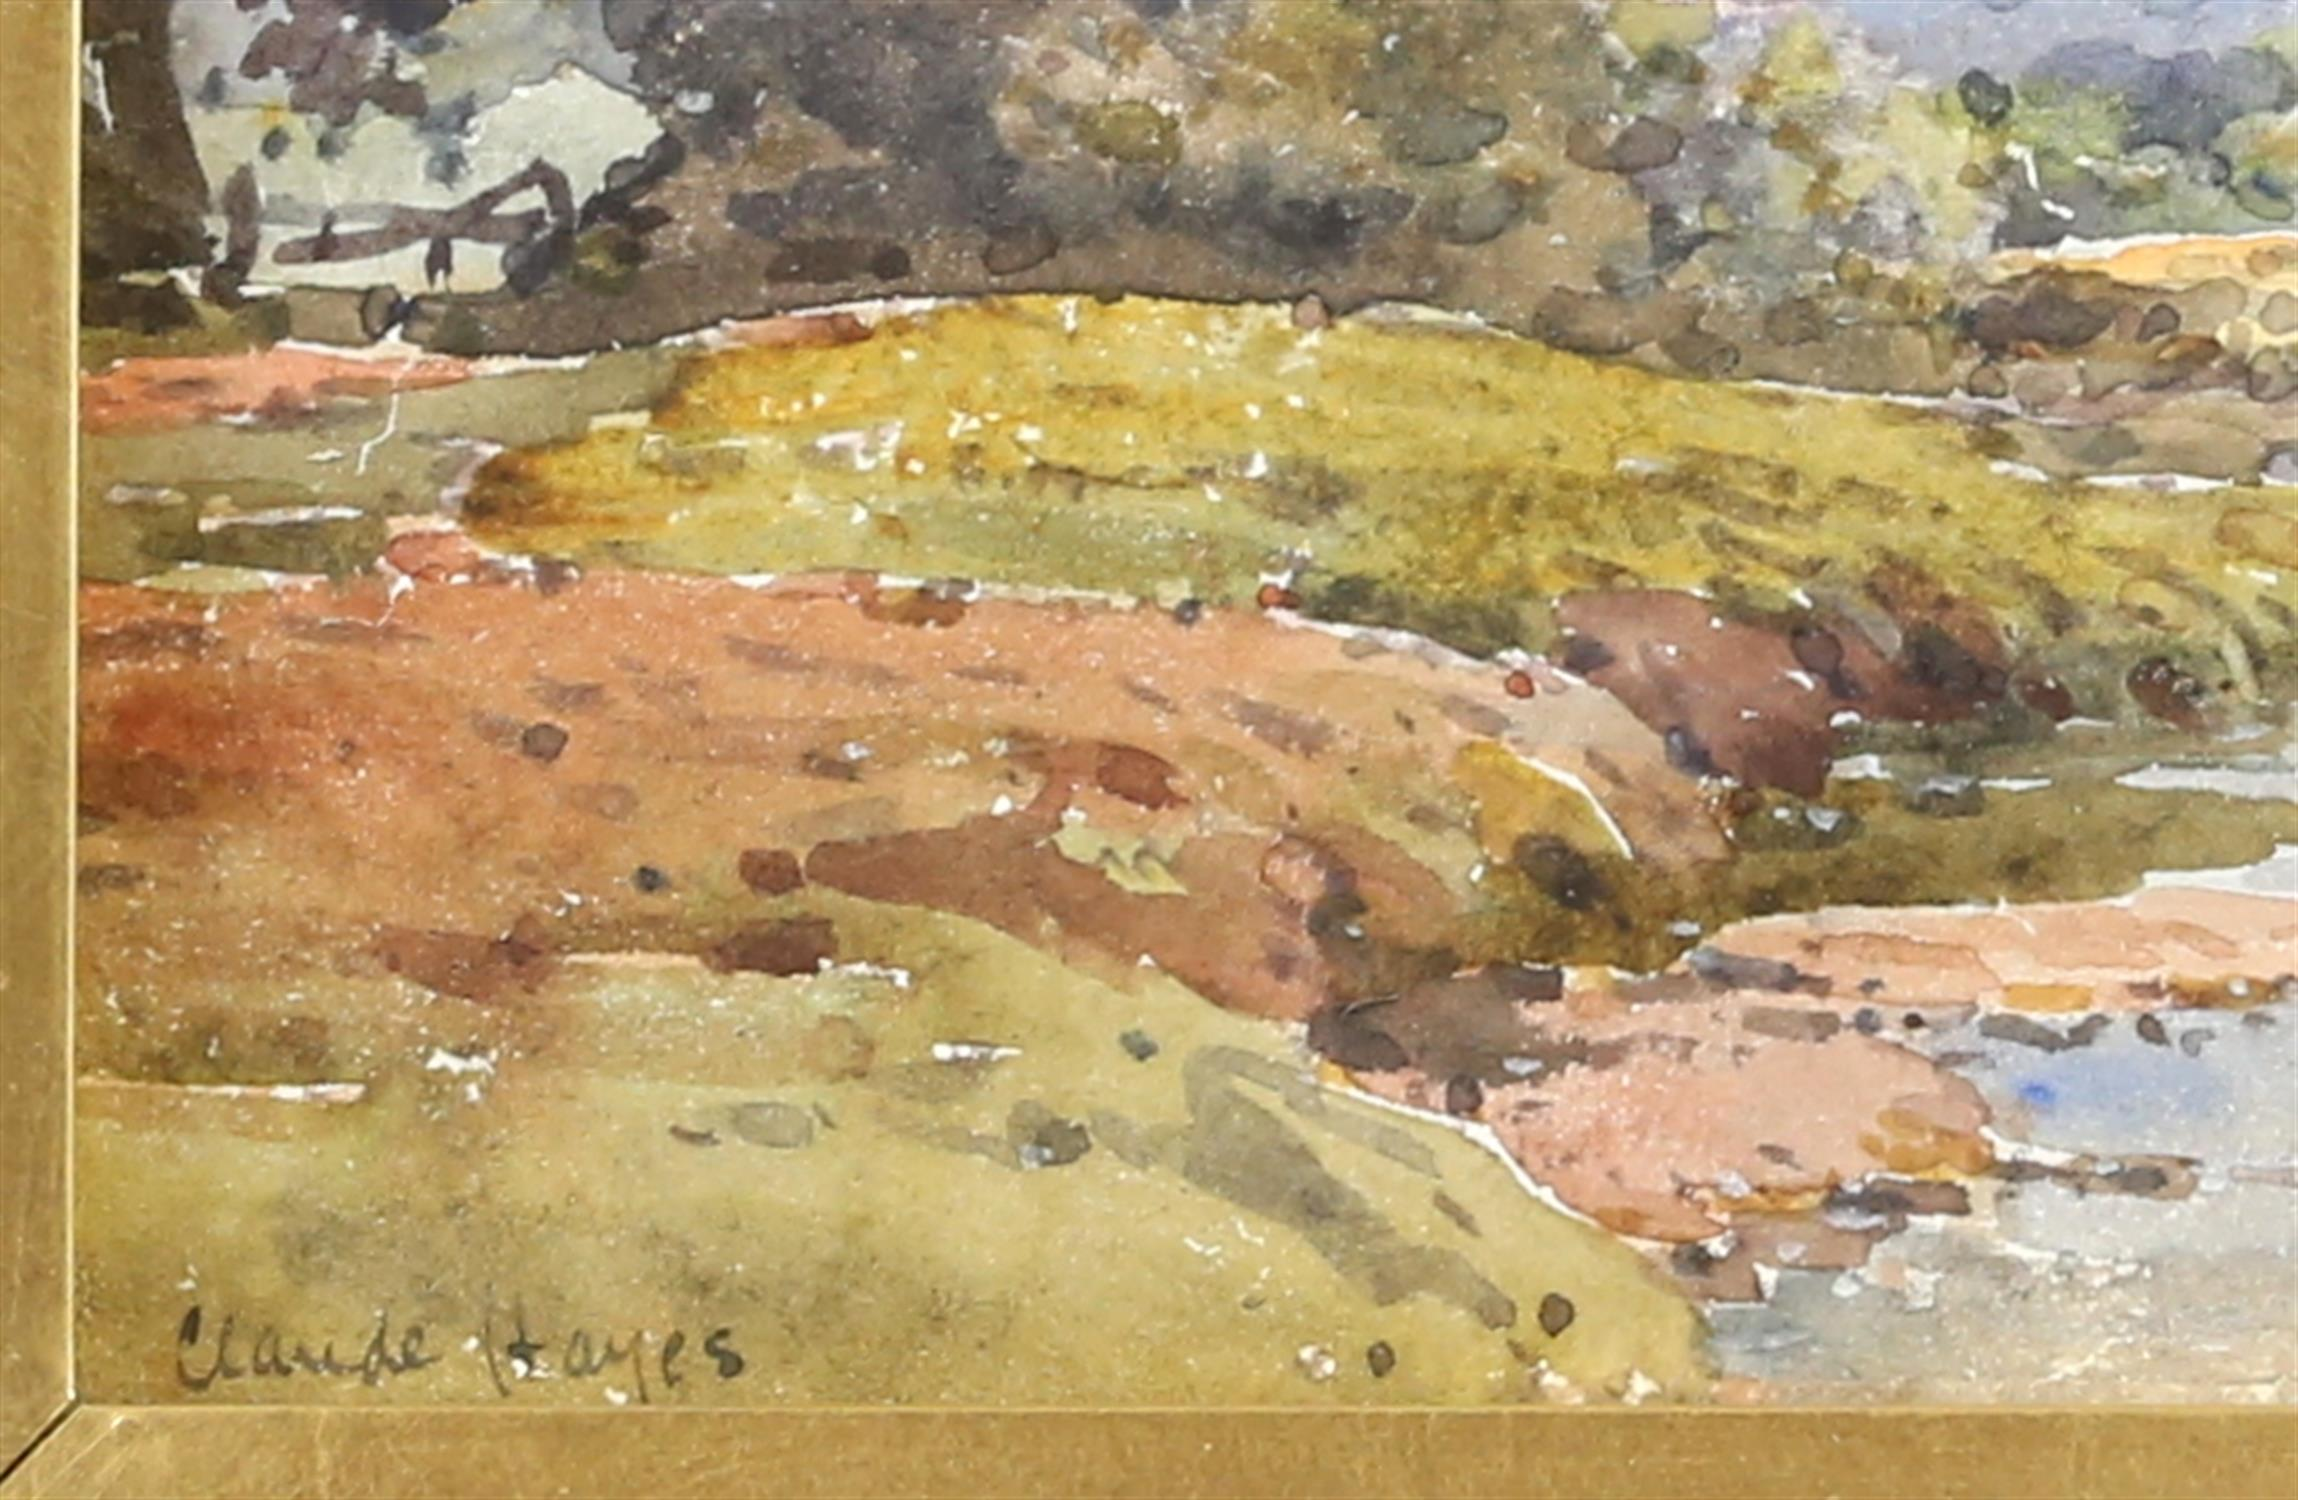 Claude Hayes (British, 1852-1922), landscape with cattle watering at a stream, signed, watercolour, - Image 3 of 4